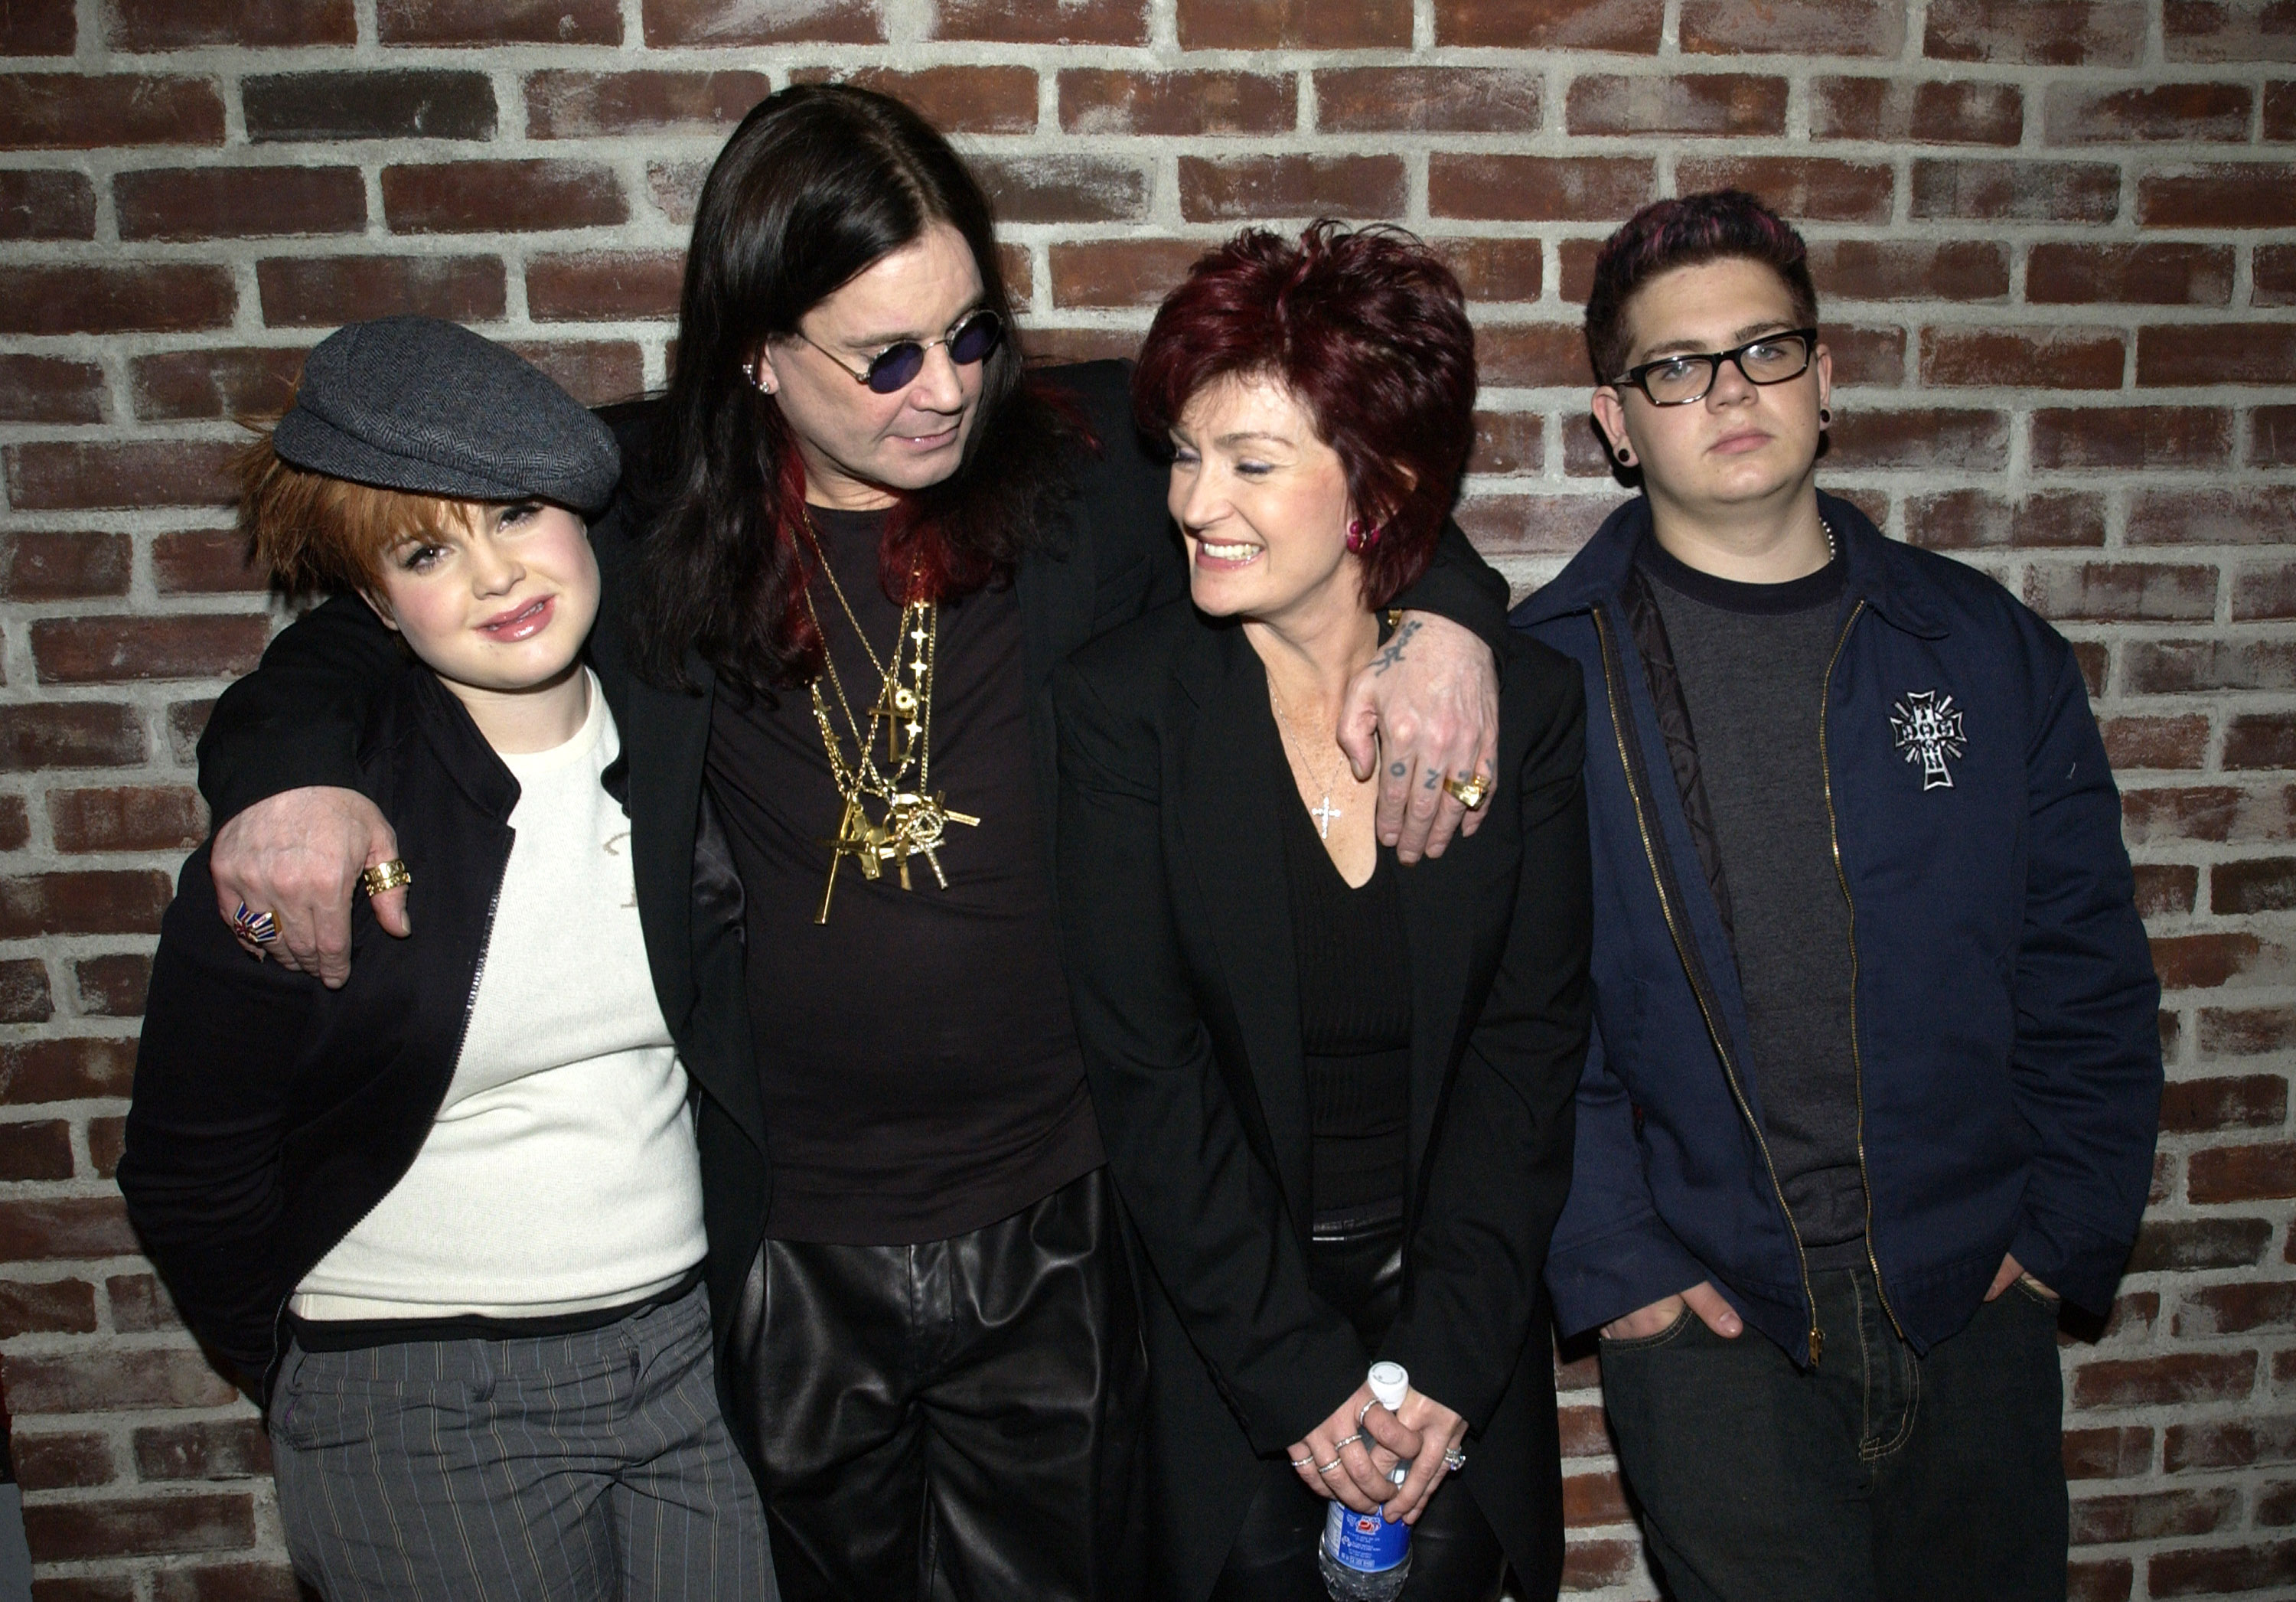 The Osbournes: Kelly Osbourne, Ozzy Osbourne, Sharon Osbourne and Jack Osbourne (Photo by KMazur/WireImage)